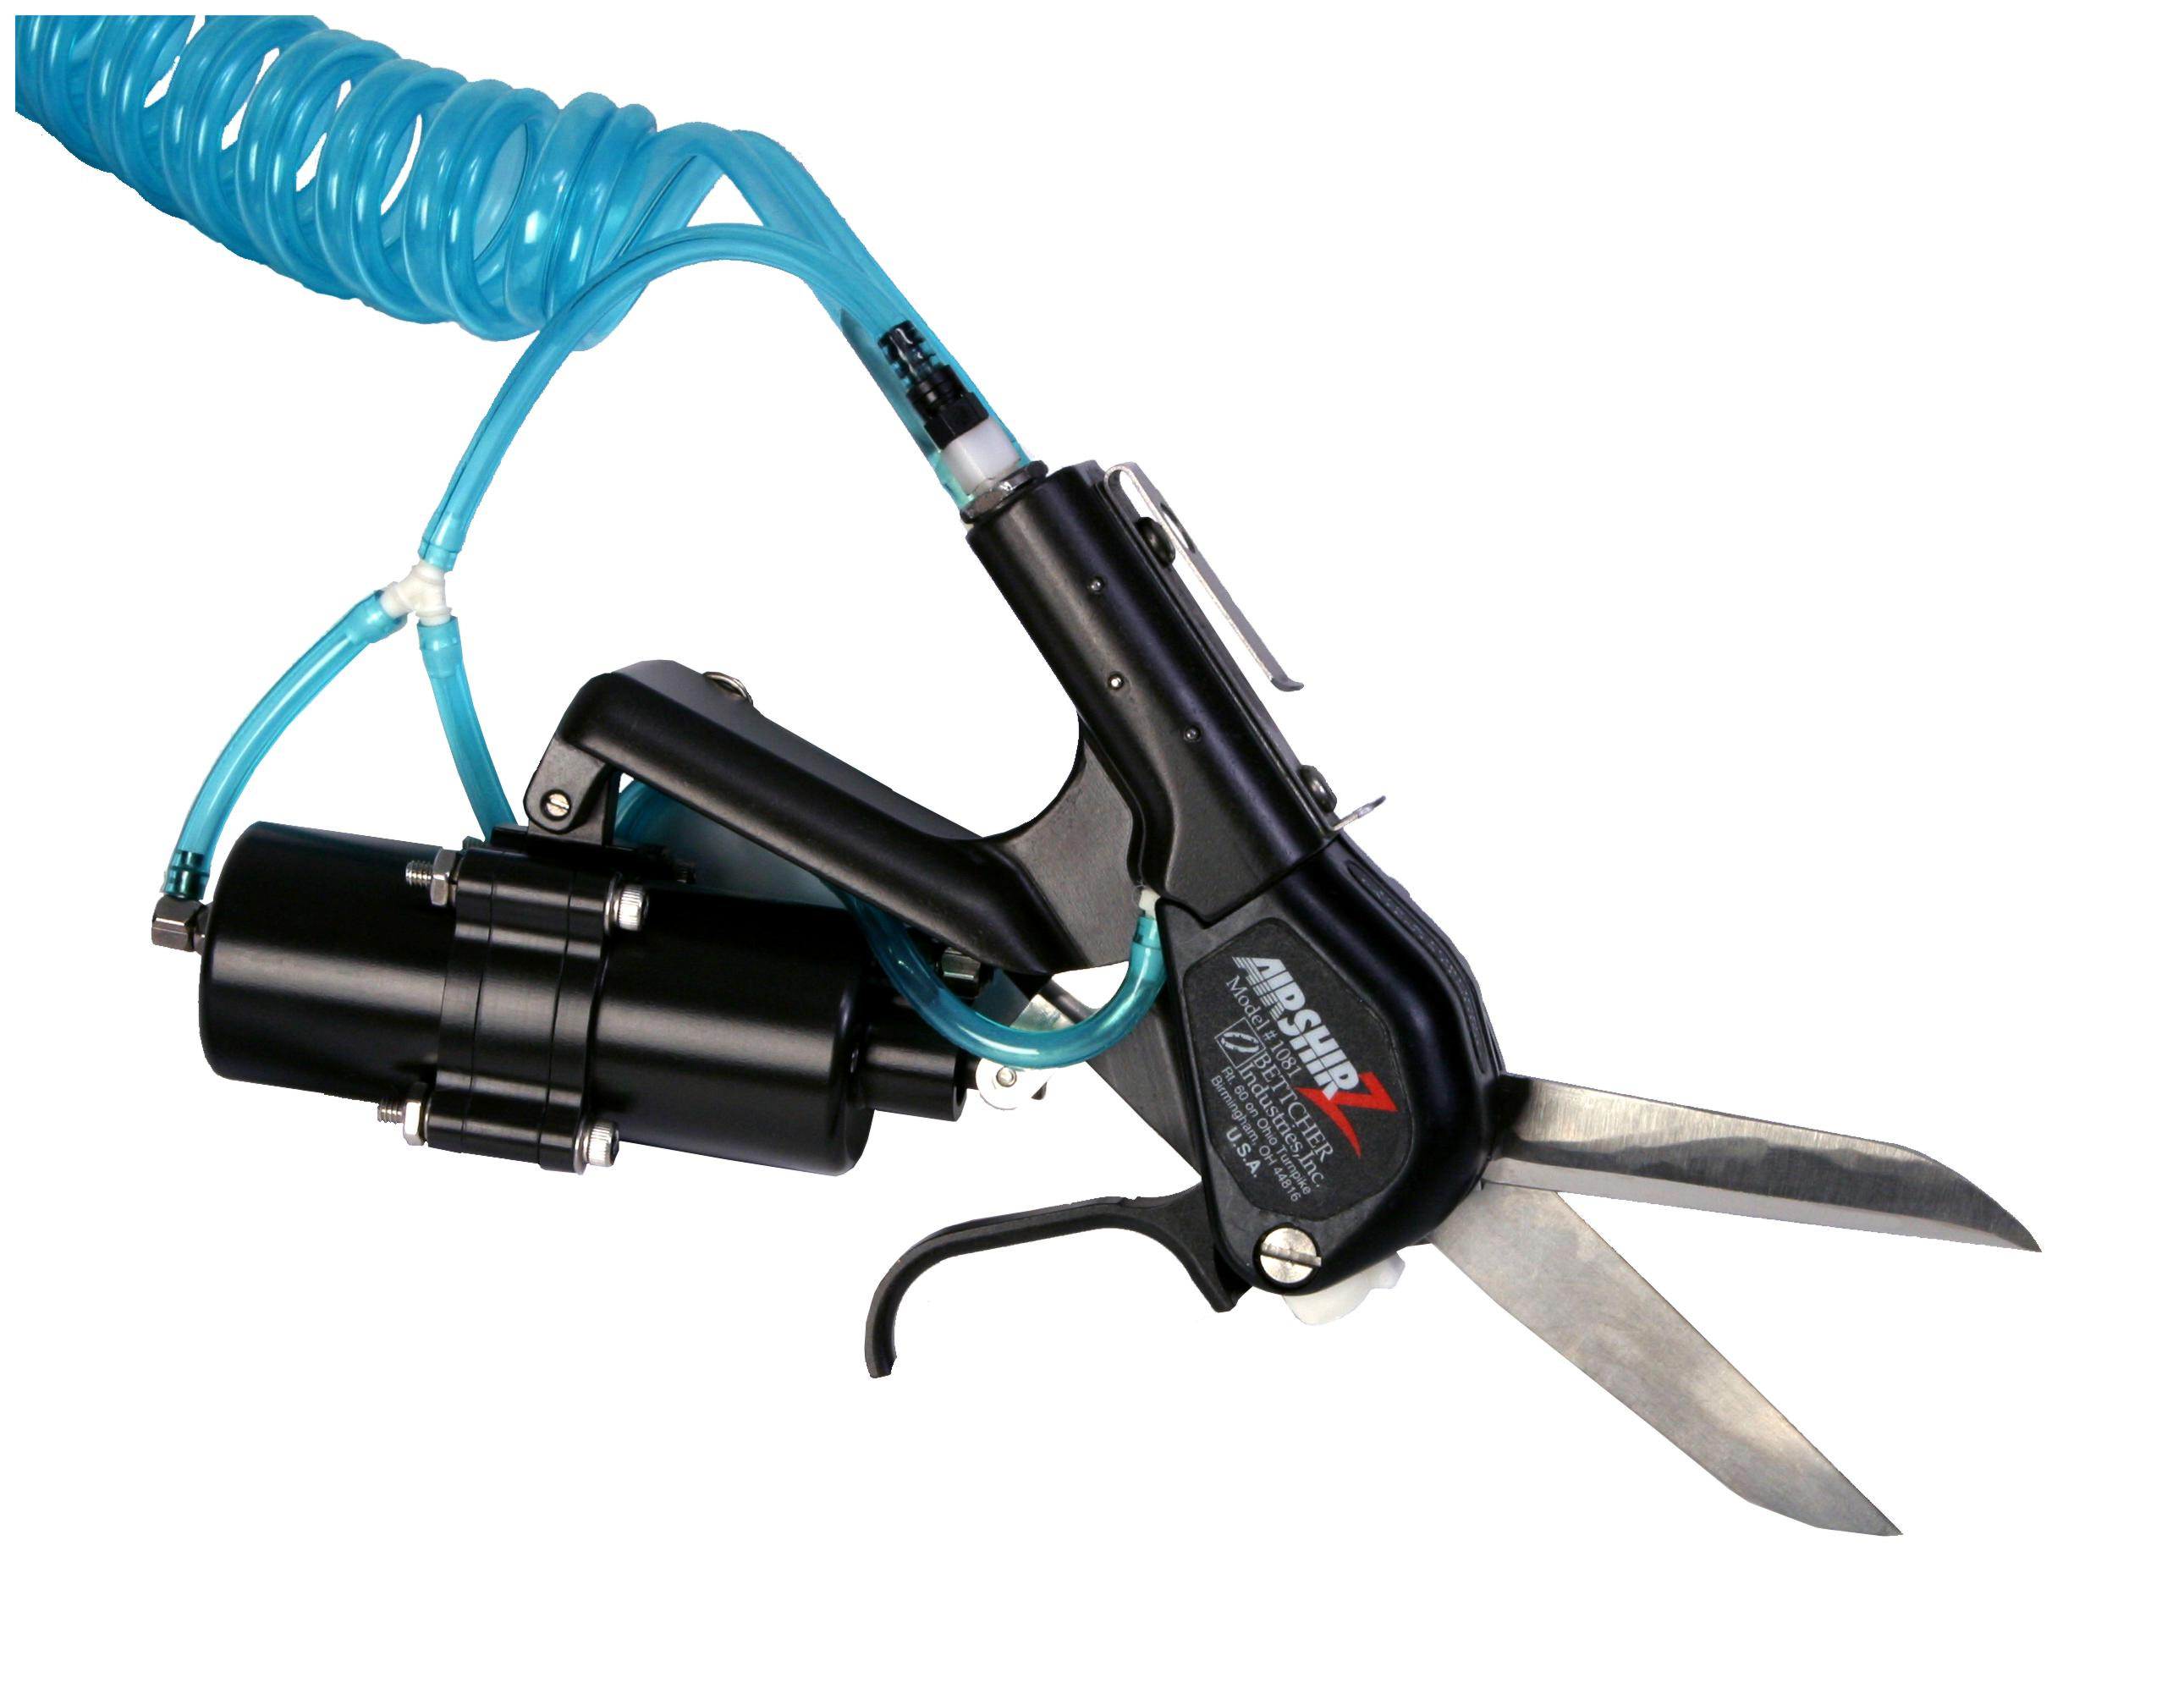 AirShirz® Magnum Pneumatic Shears